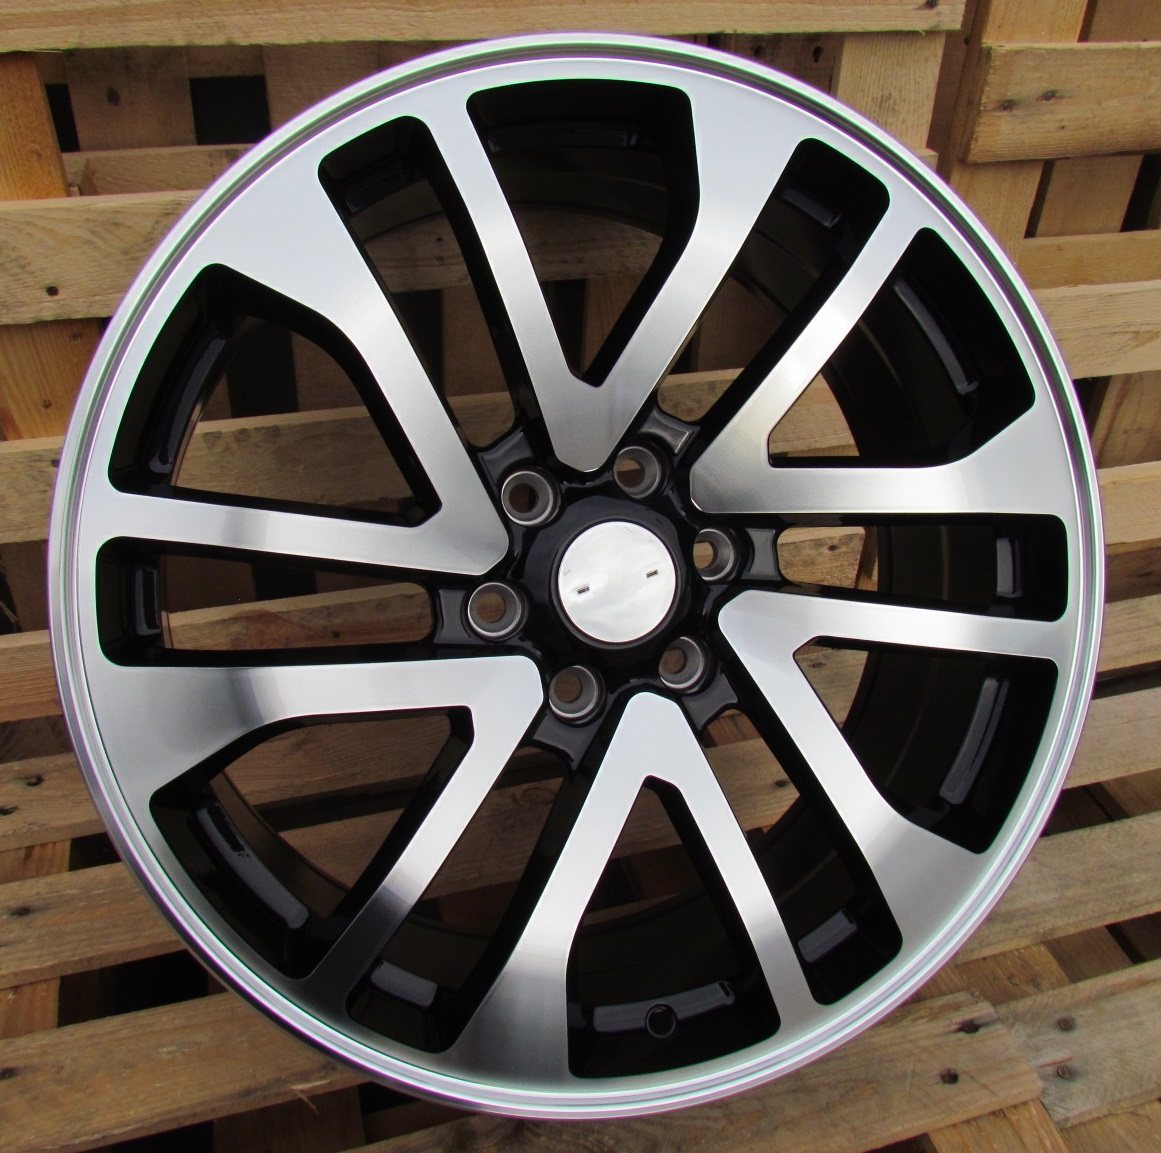 N18X7.5 6X114.3 ET35 73.1 LU1313 (1313187511M) MB+Powder coating RWR NIS (4x4 price)(+3eur) (K4) 7.5x18 ET35 6x114.3